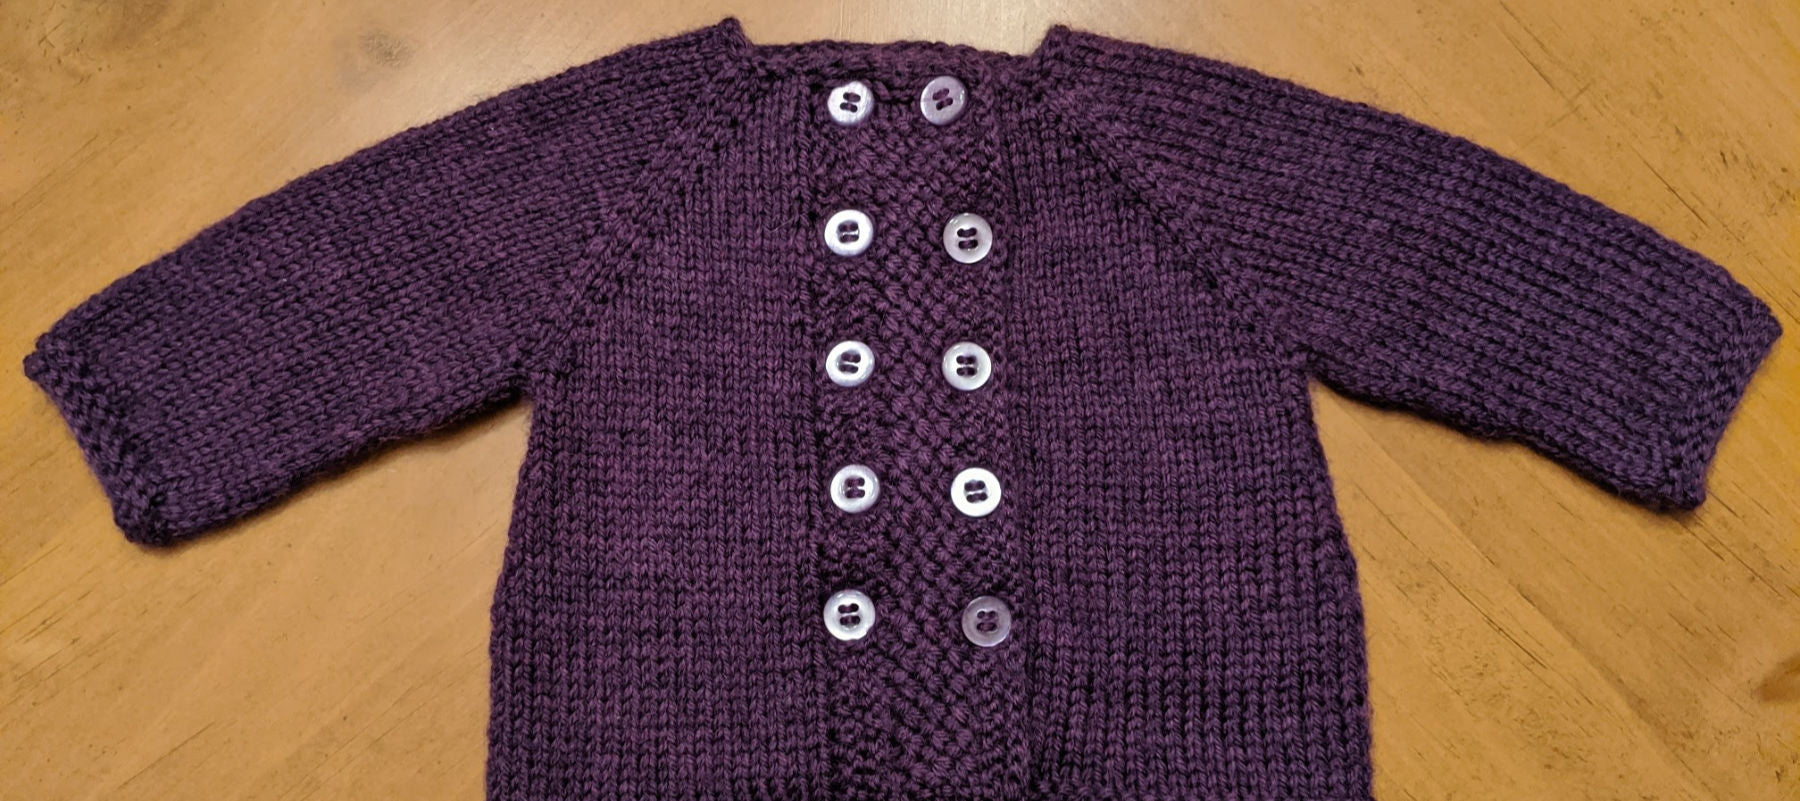 Tips for Knitting Sweaters that Look Great